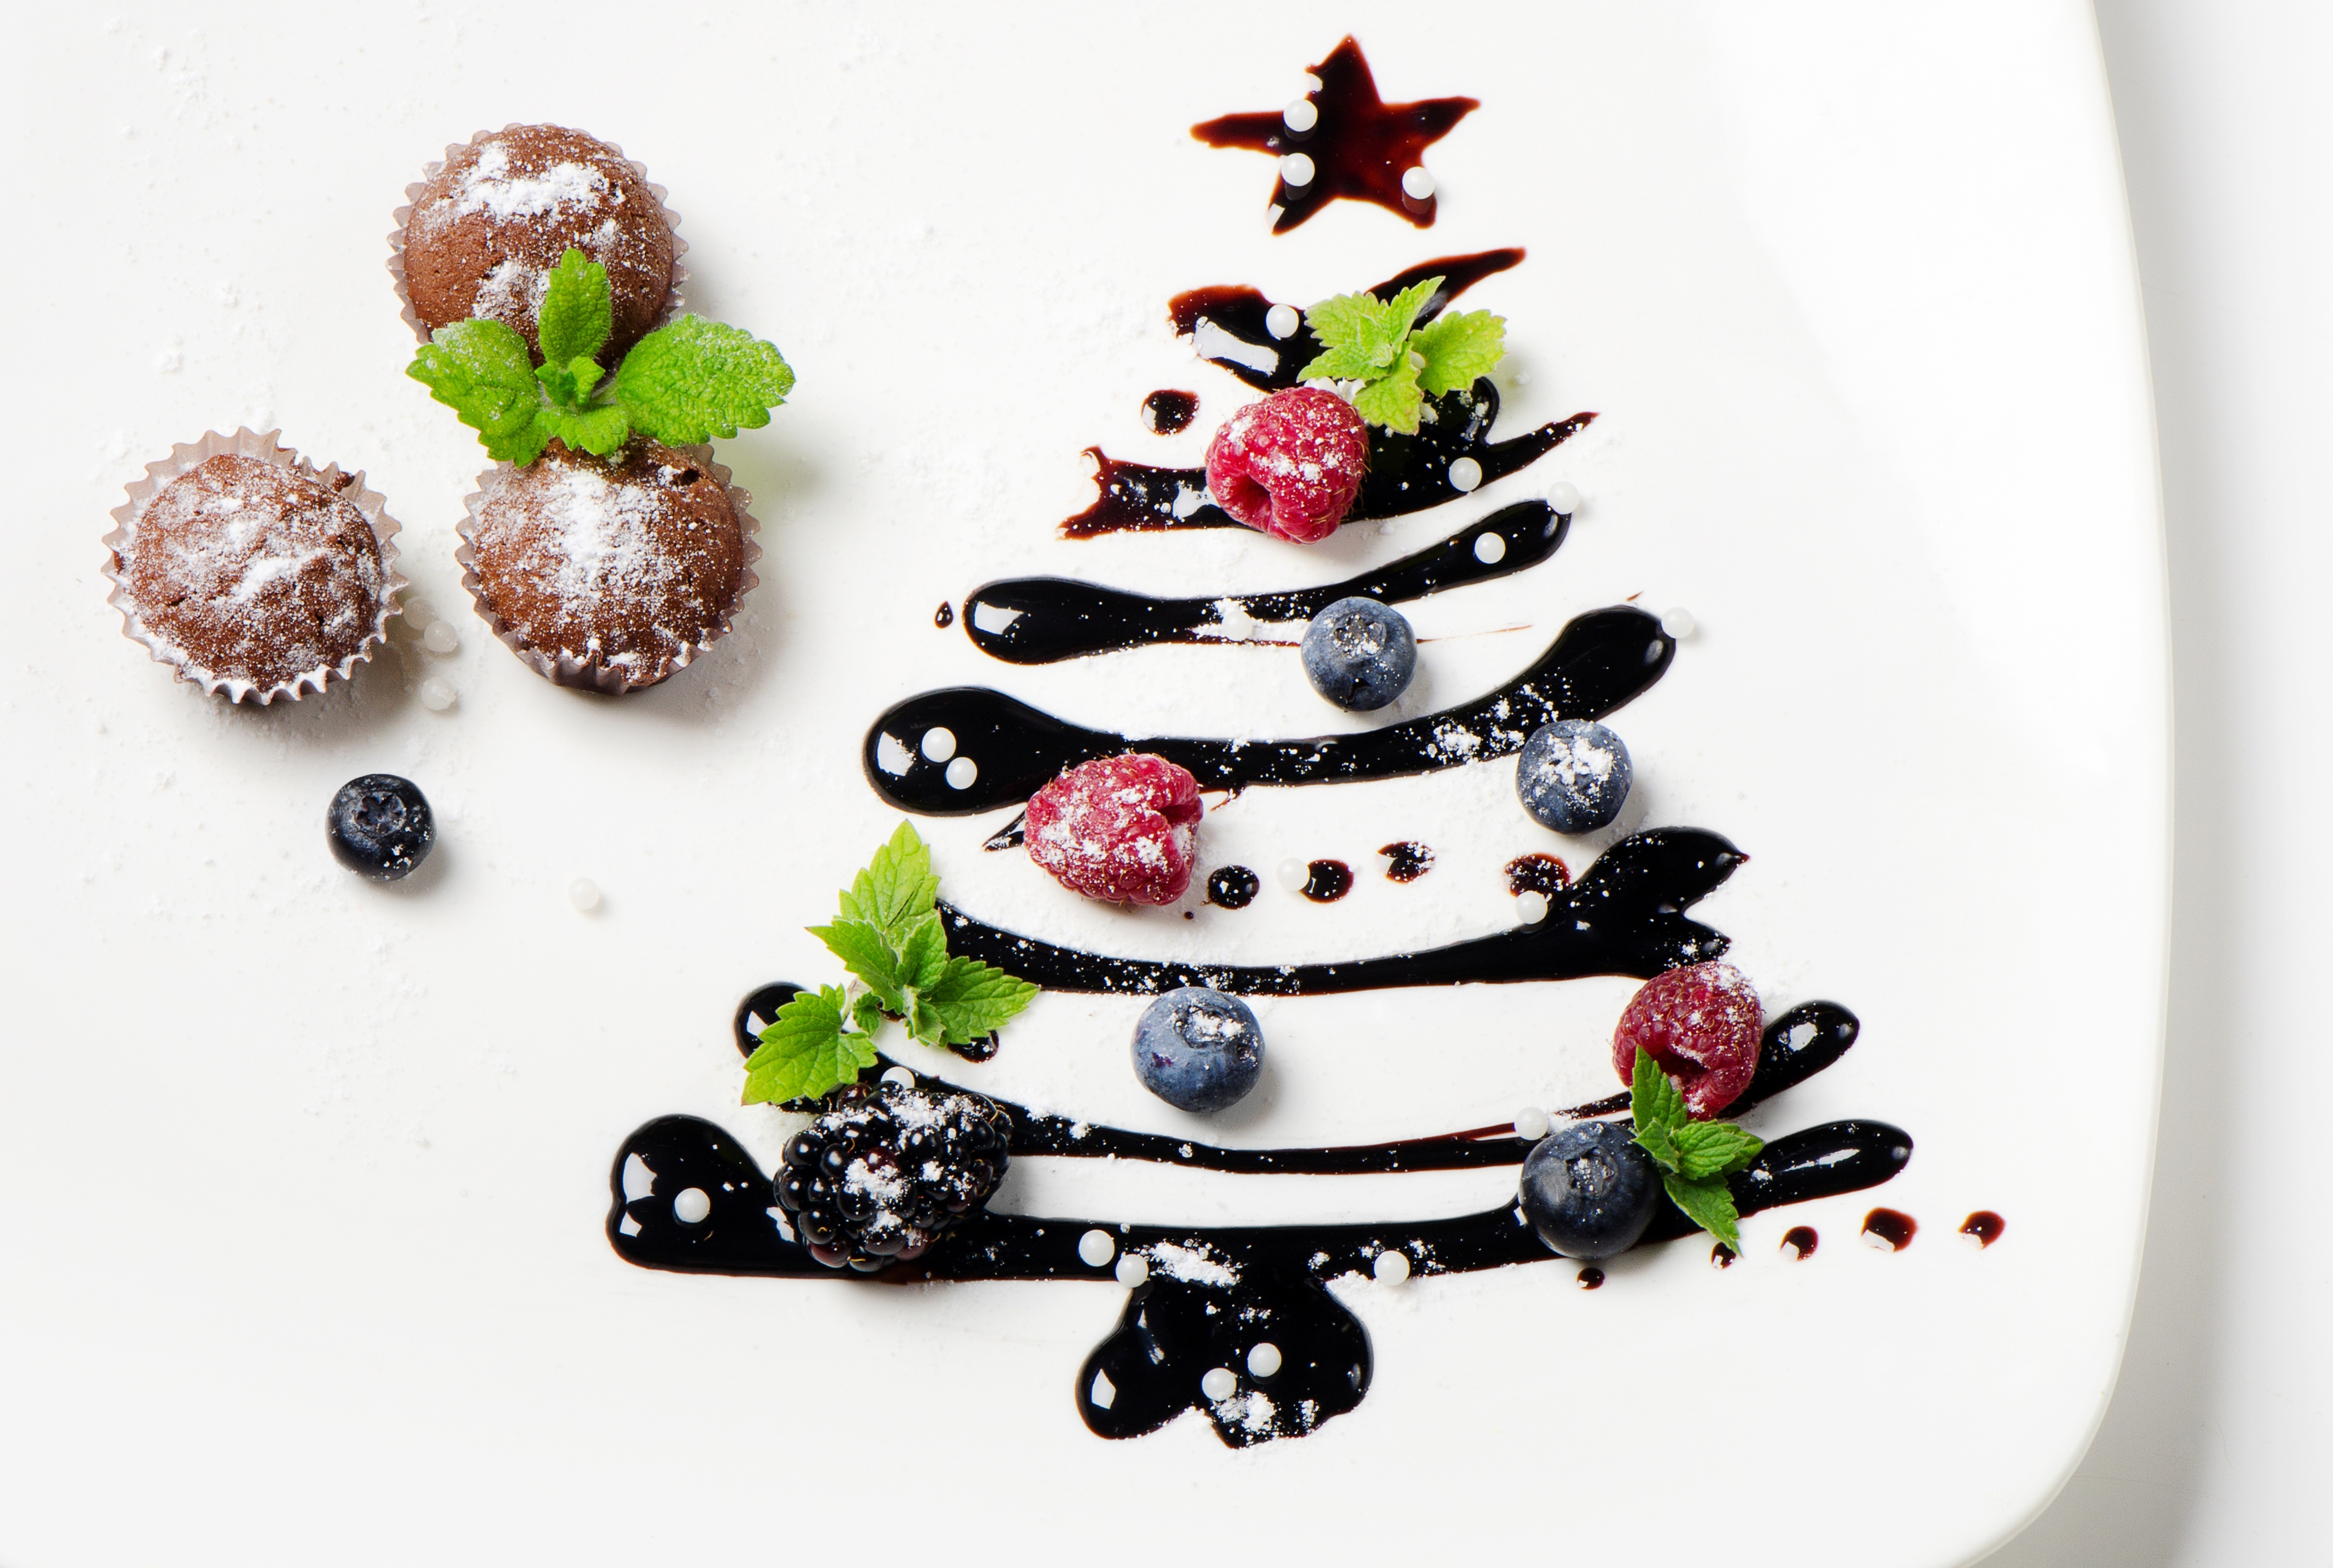 Food from trees clipart jpg library stock Food from trees clipart - ClipartFest jpg library stock